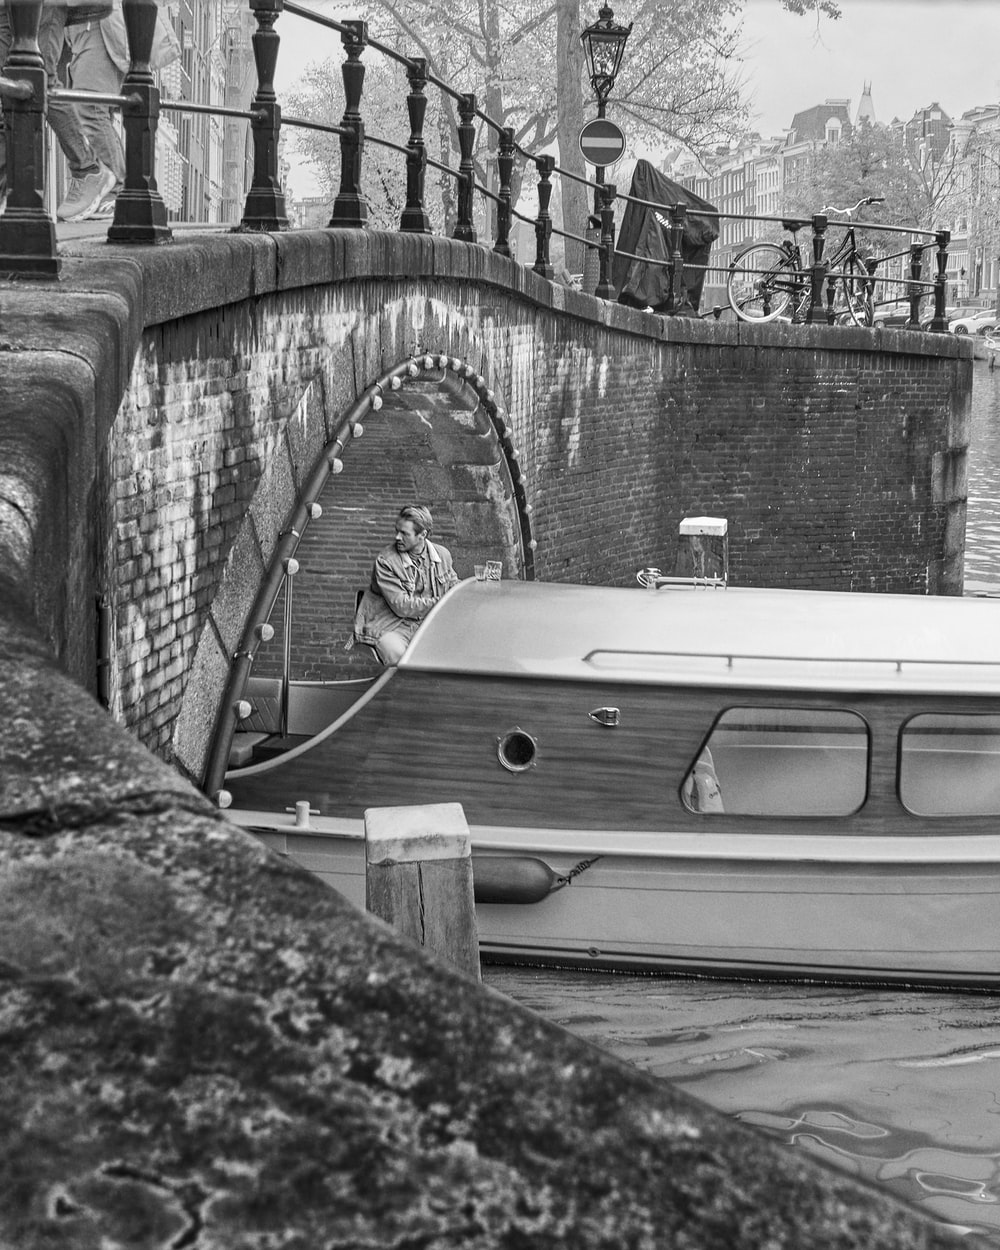 grayscale photo of a boat on a dock